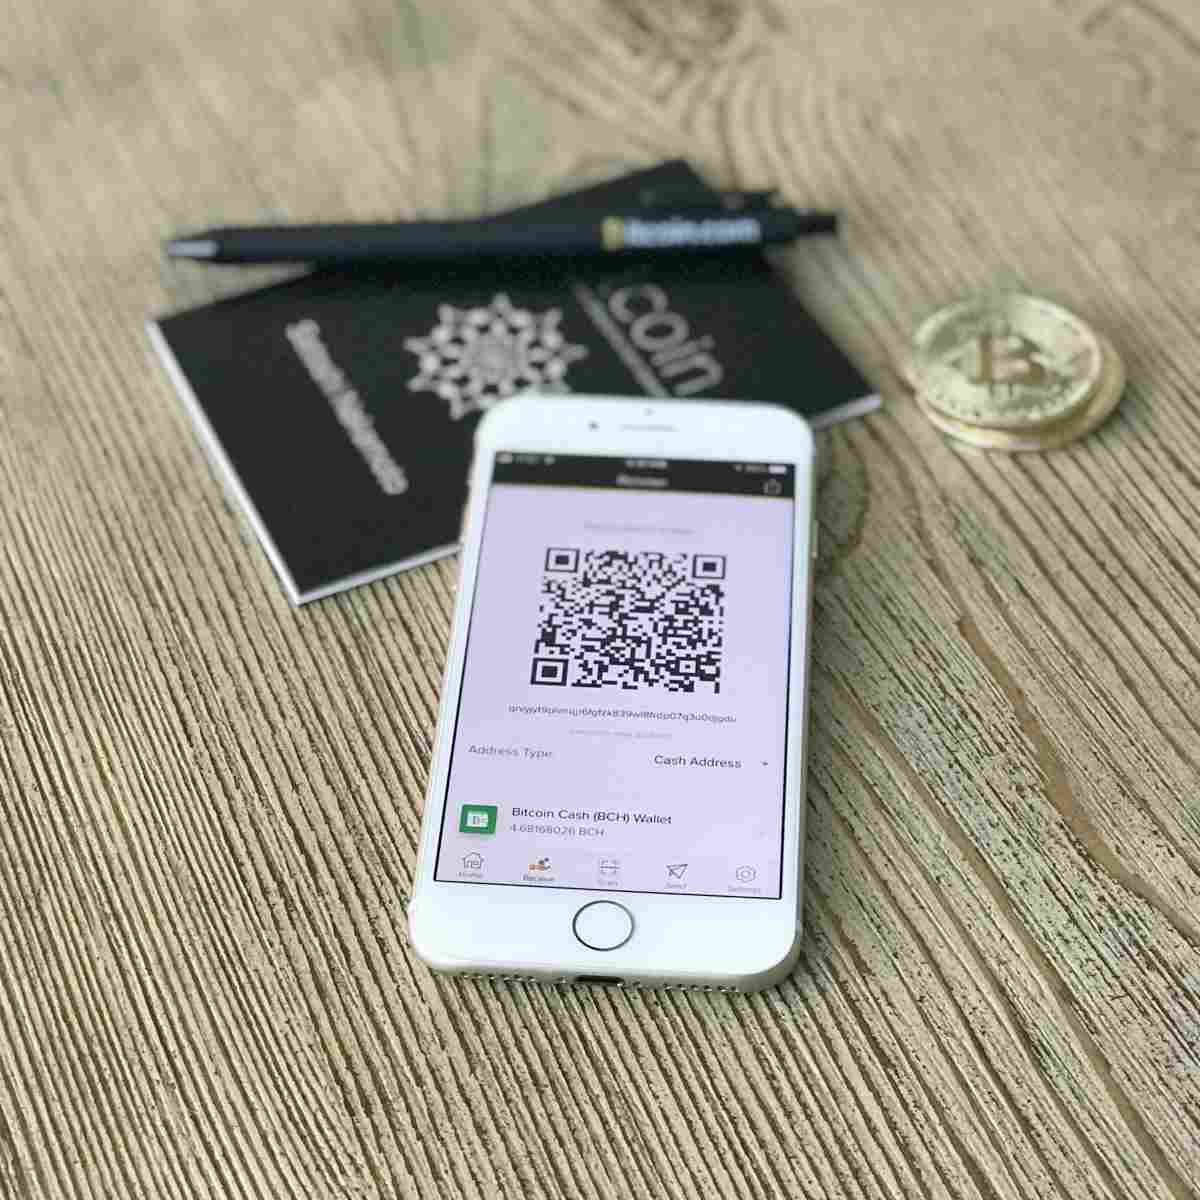 mobile phone showing qr code | Investing in Cryptocurrency | What You Should Ask | investing in cryptocurrency | money